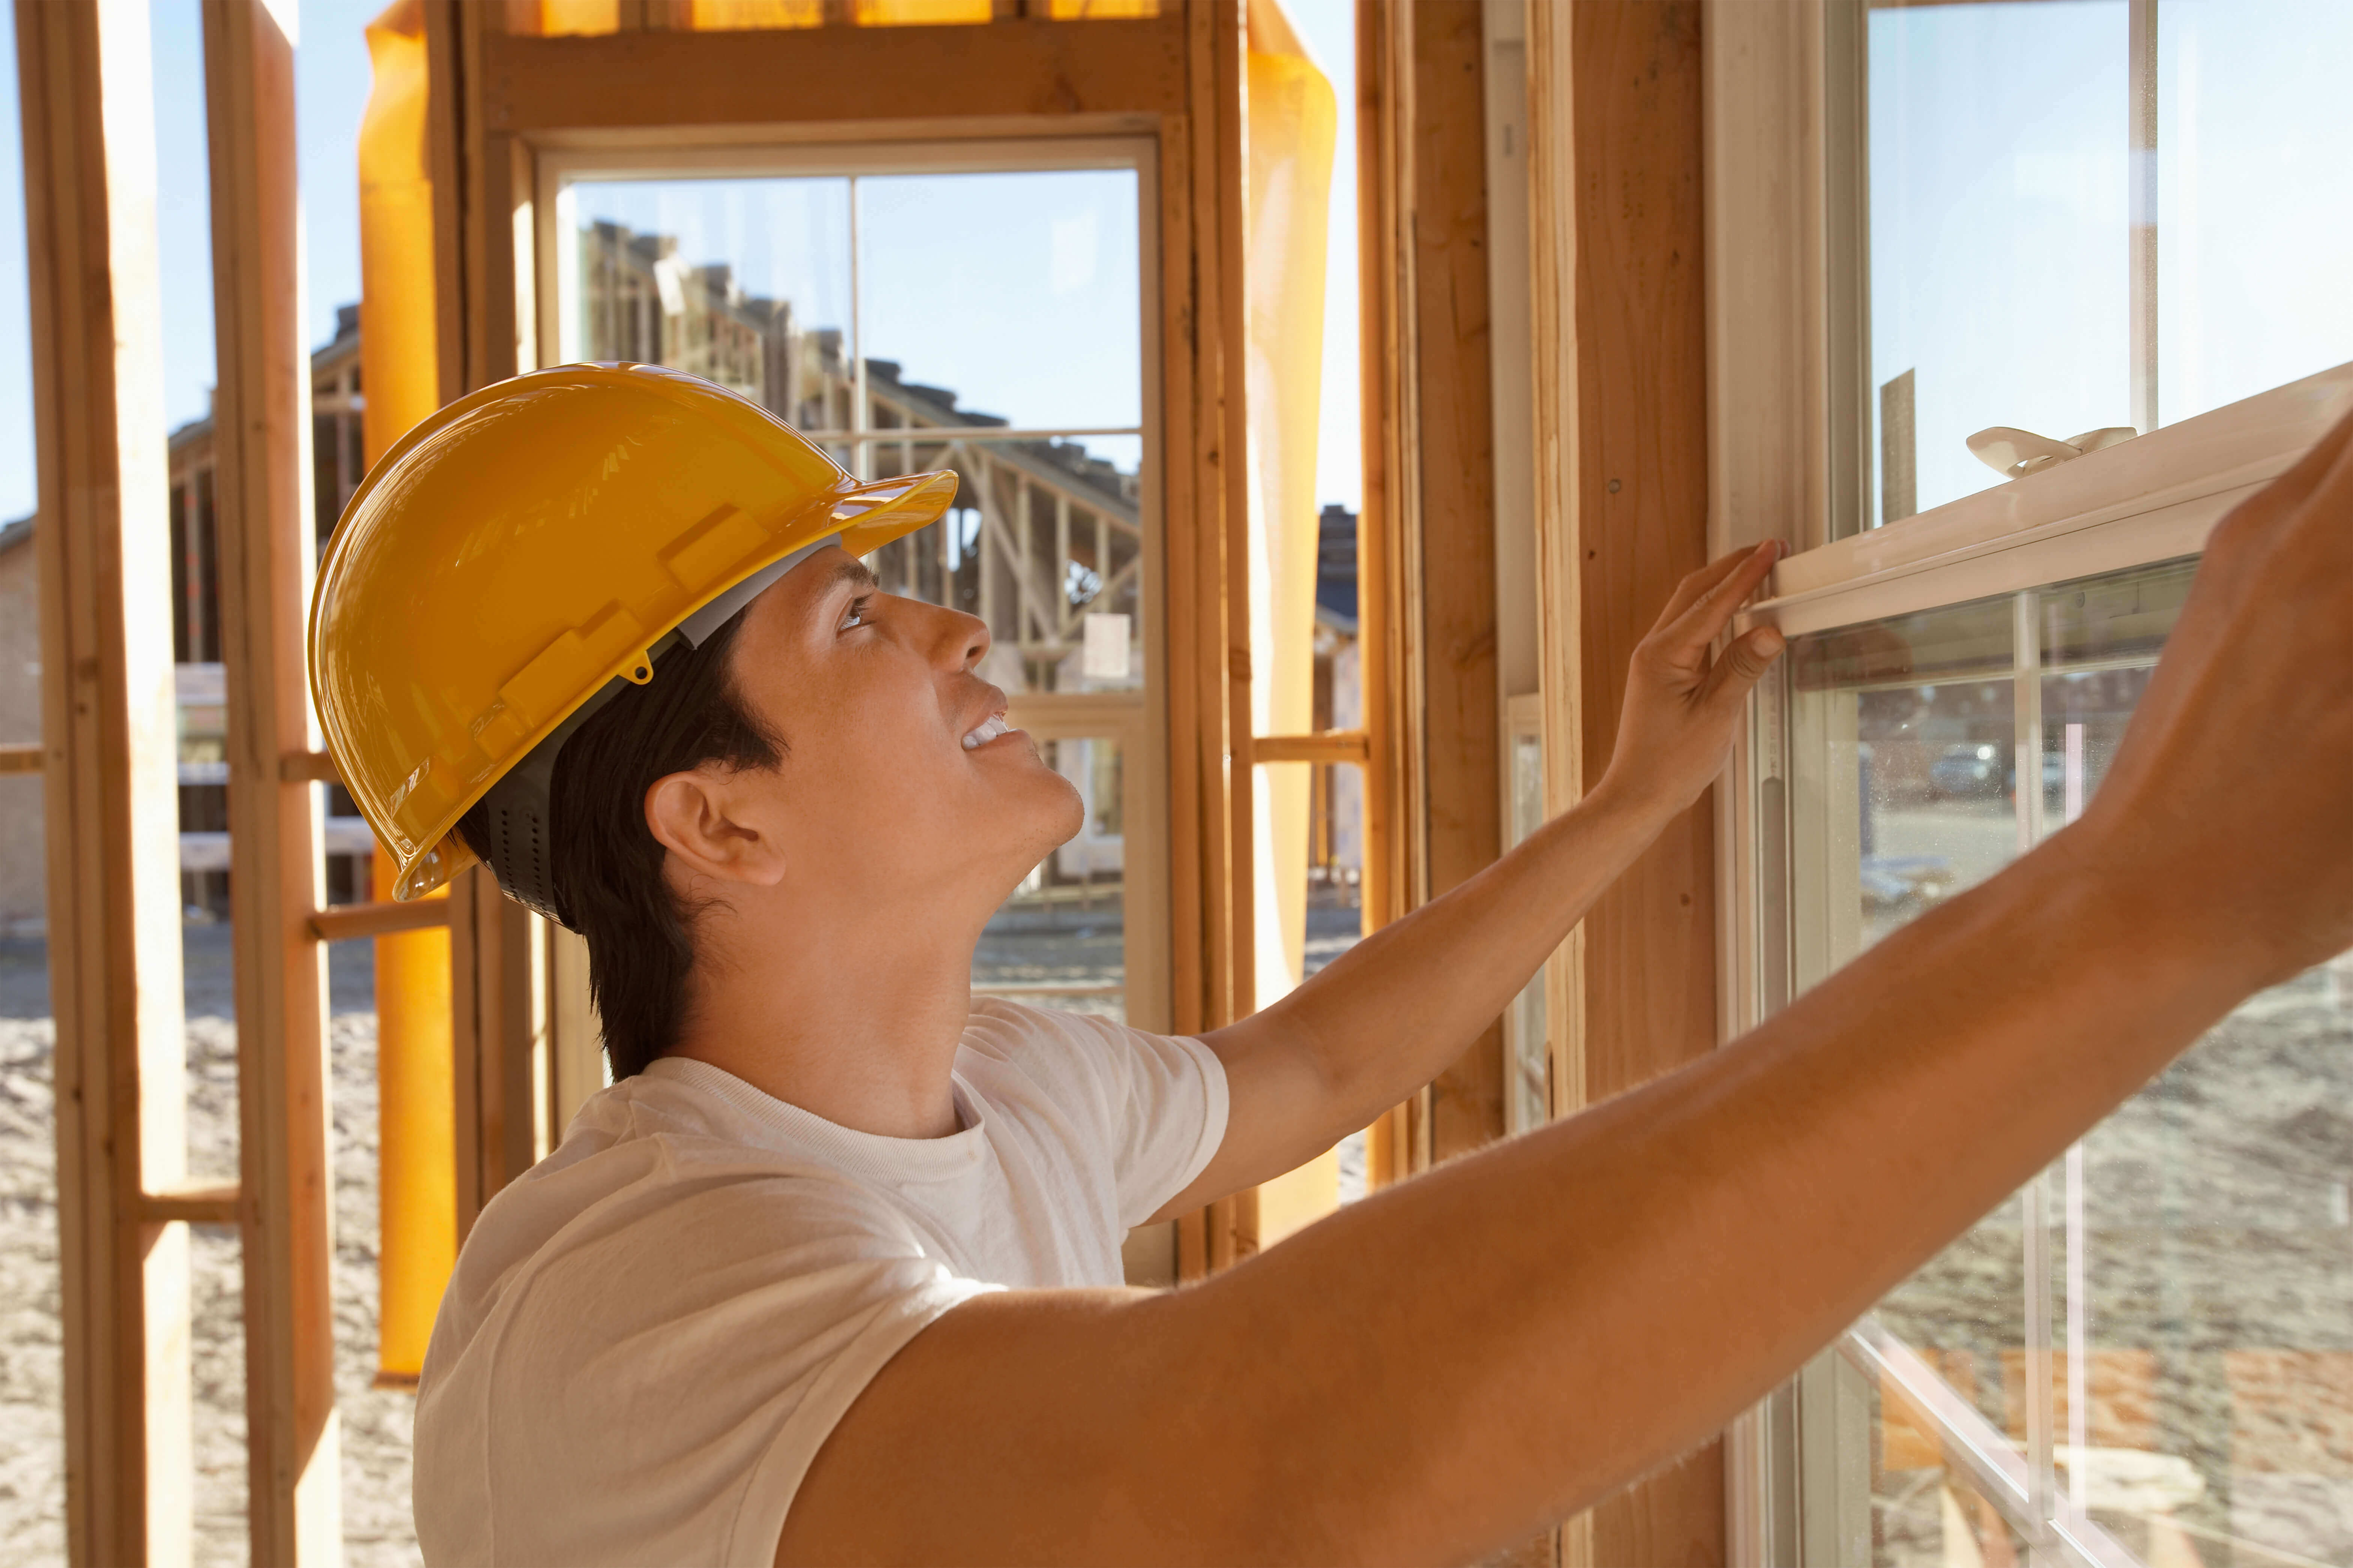 Important Safety Tips You Should Follow While Working